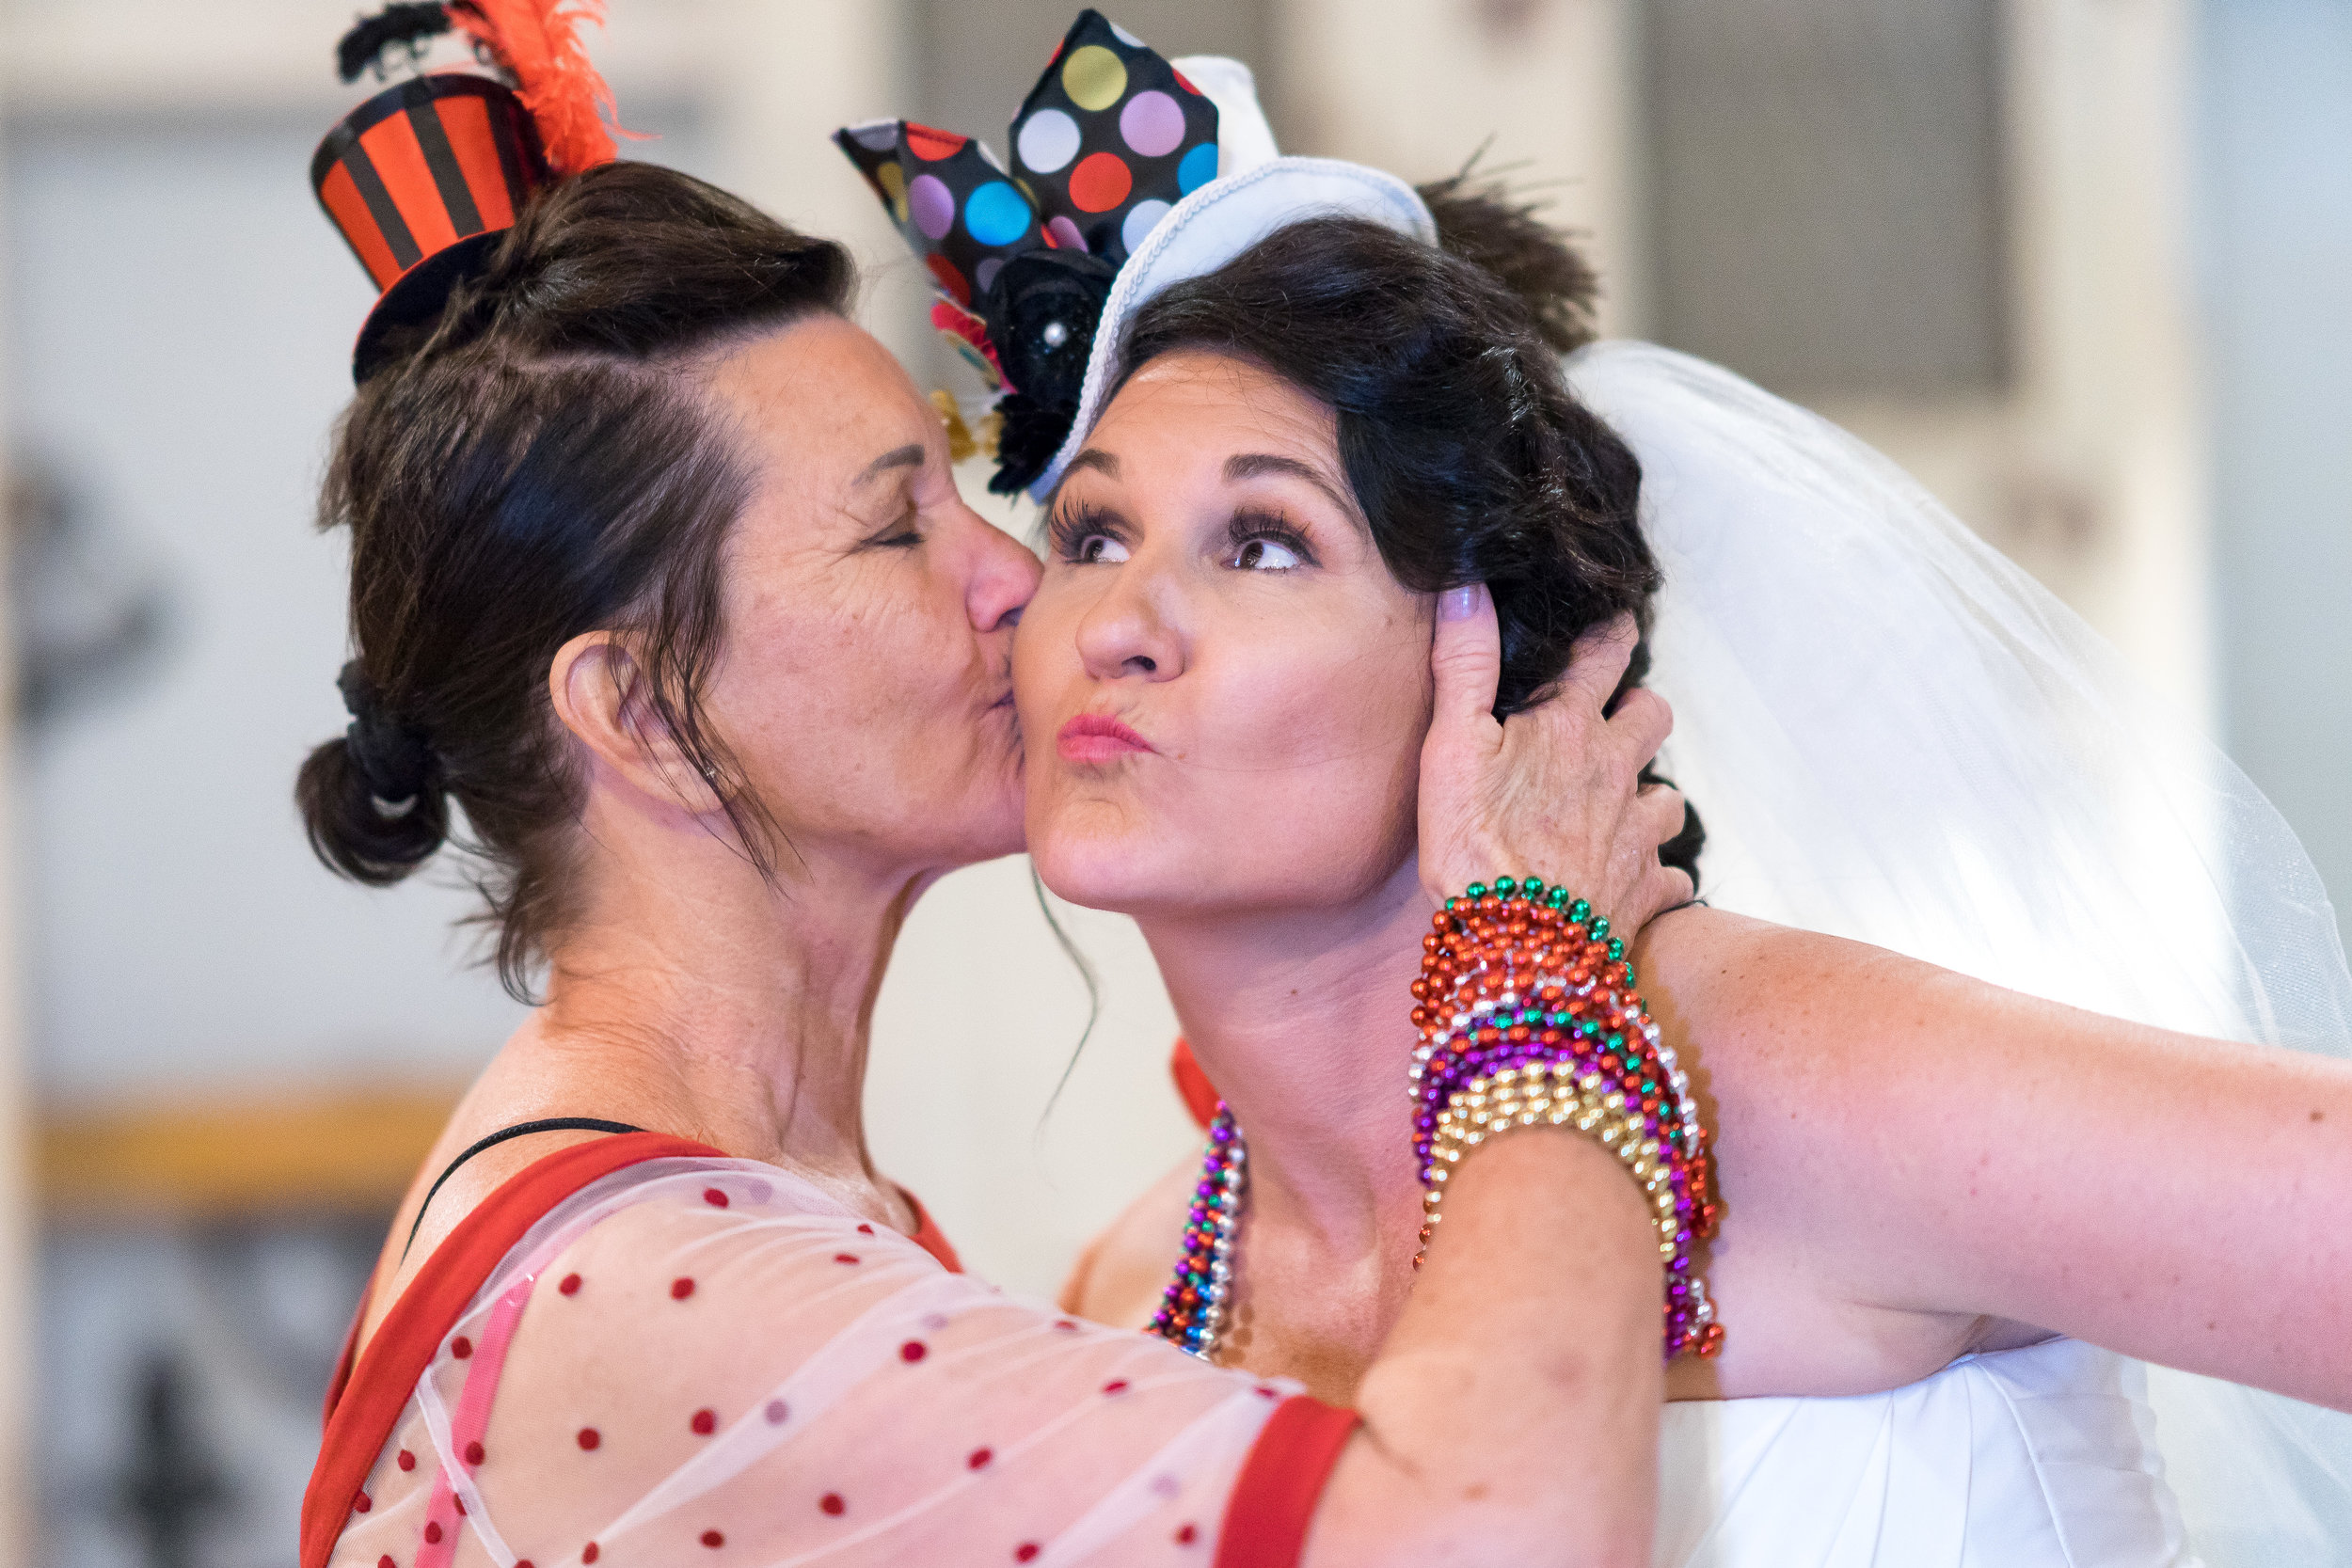 candid image of bride and mother at wedding by pensacola photographer adam cotton